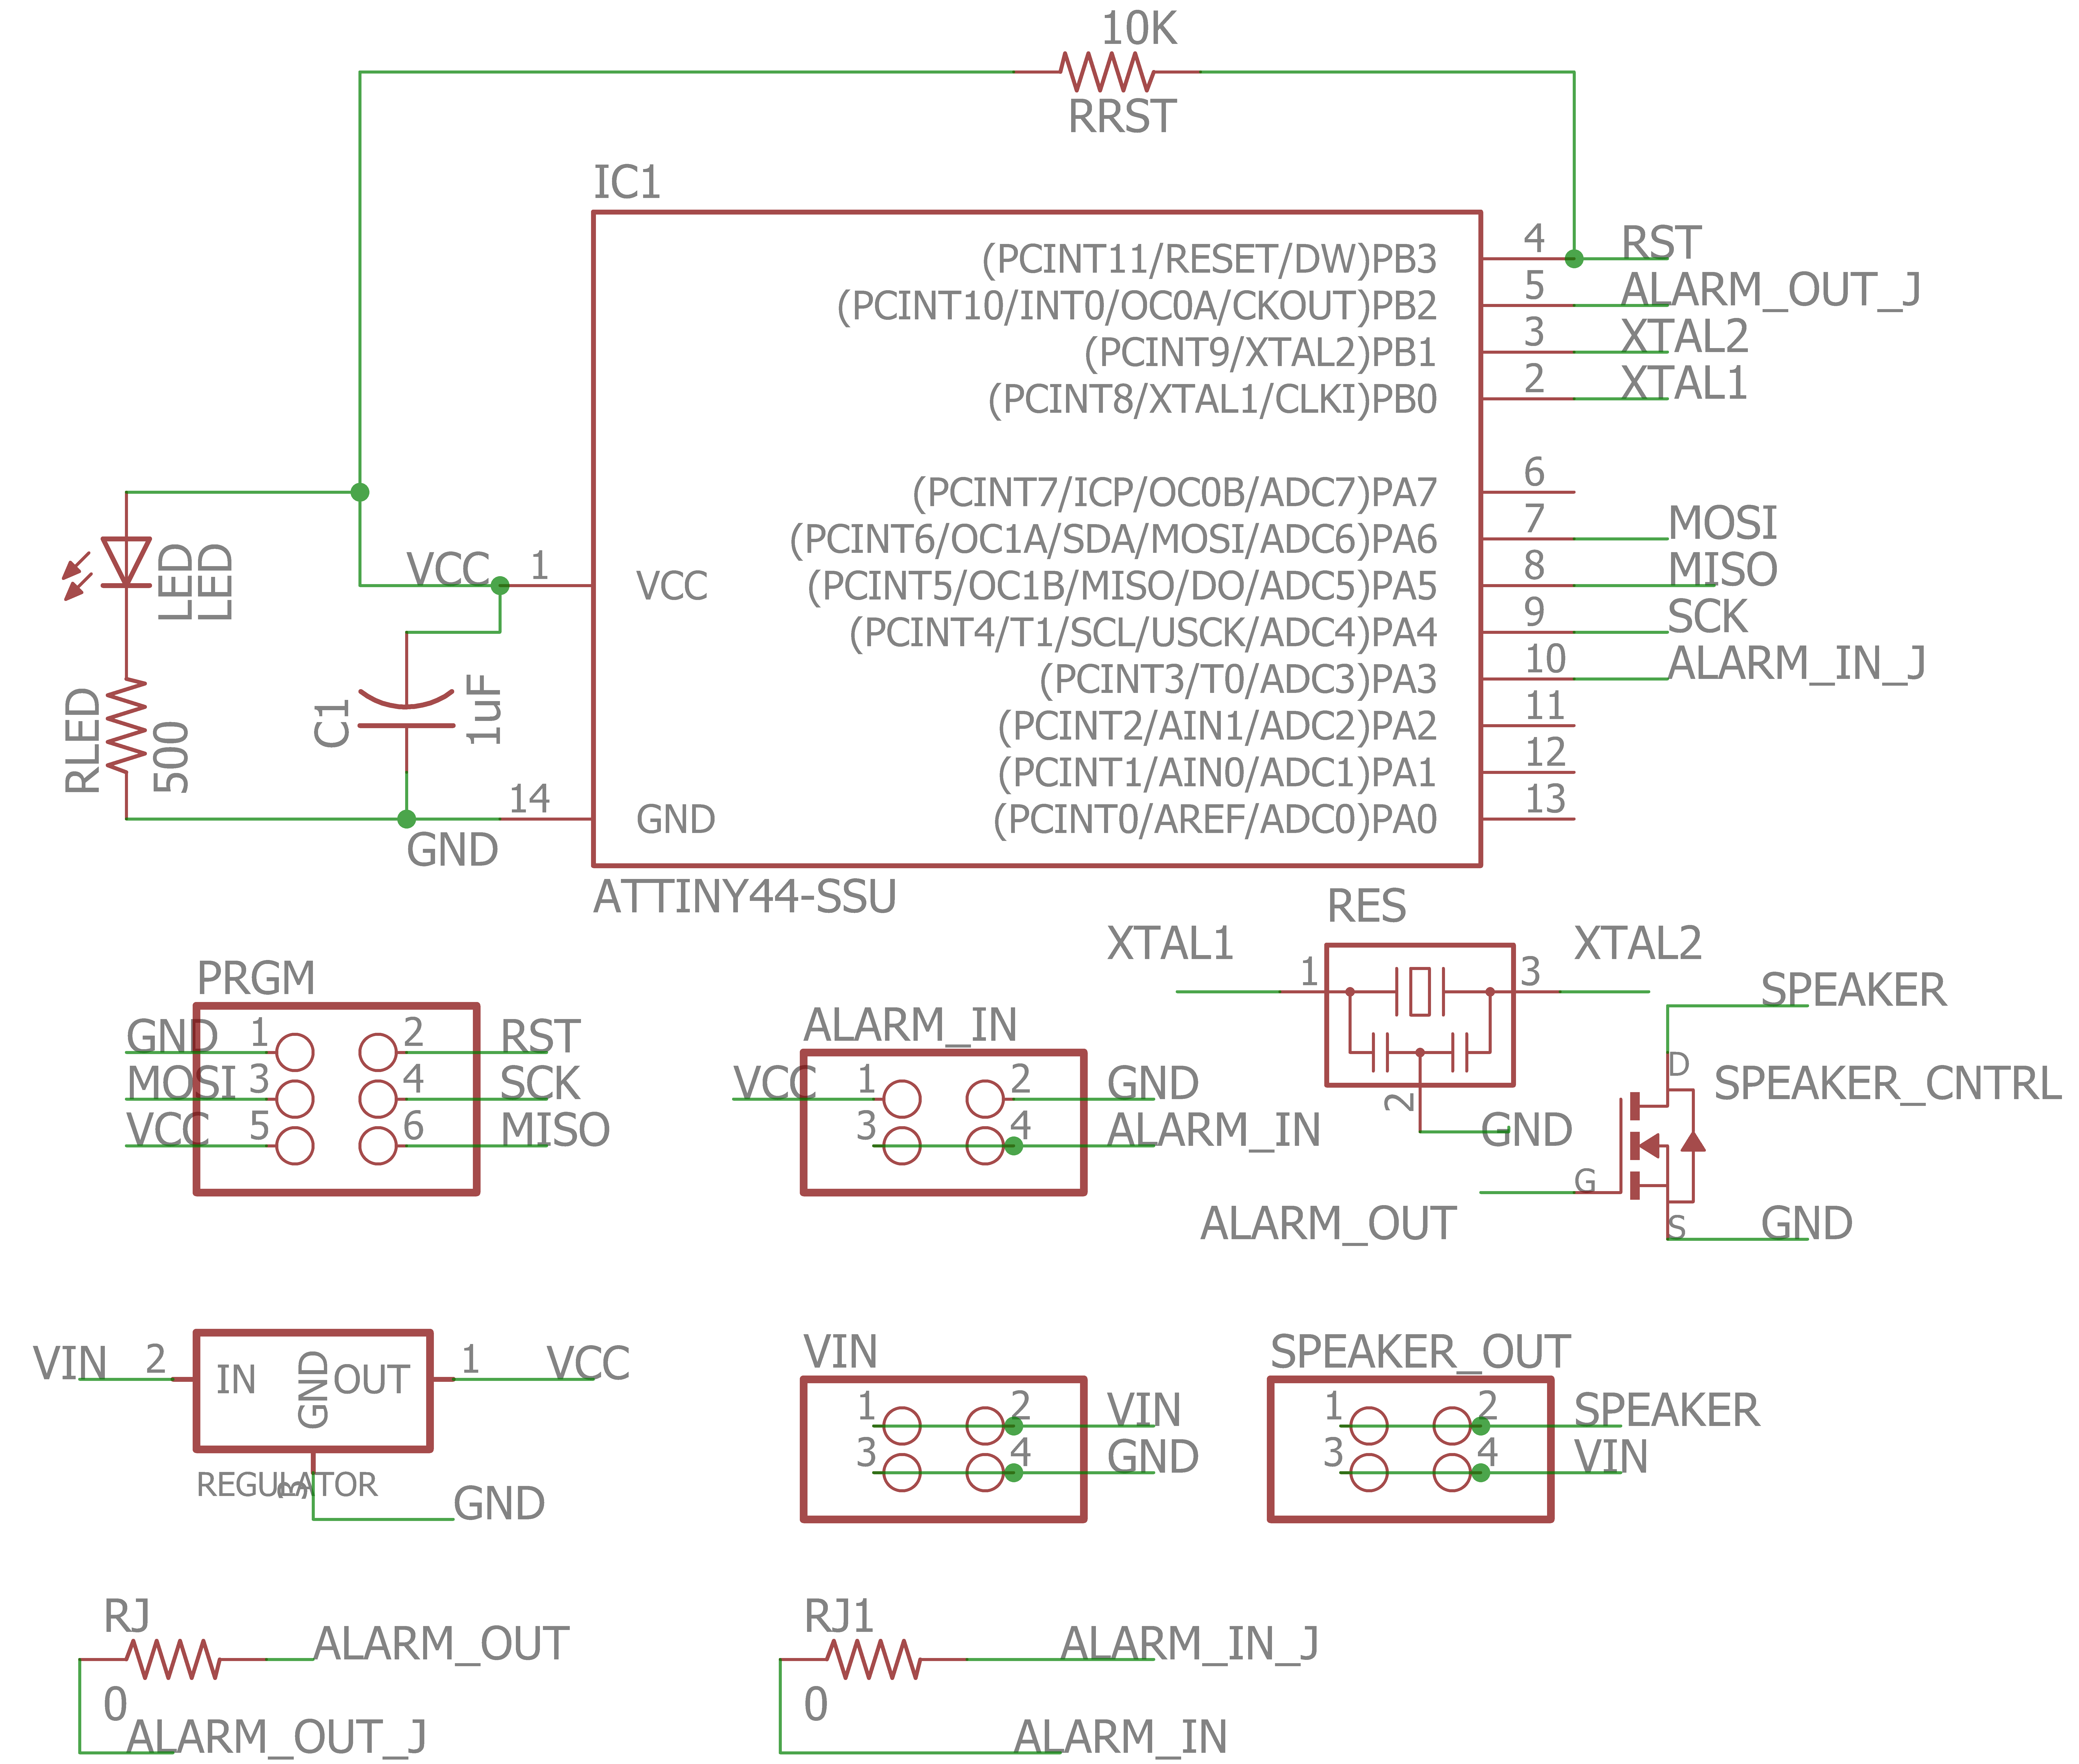 1984 cr500 wiring diagram wiring diagram for professional • 1984 cr500 wiring diagram wiring diagram 1984 cr500 engine 1984 cr500 engine